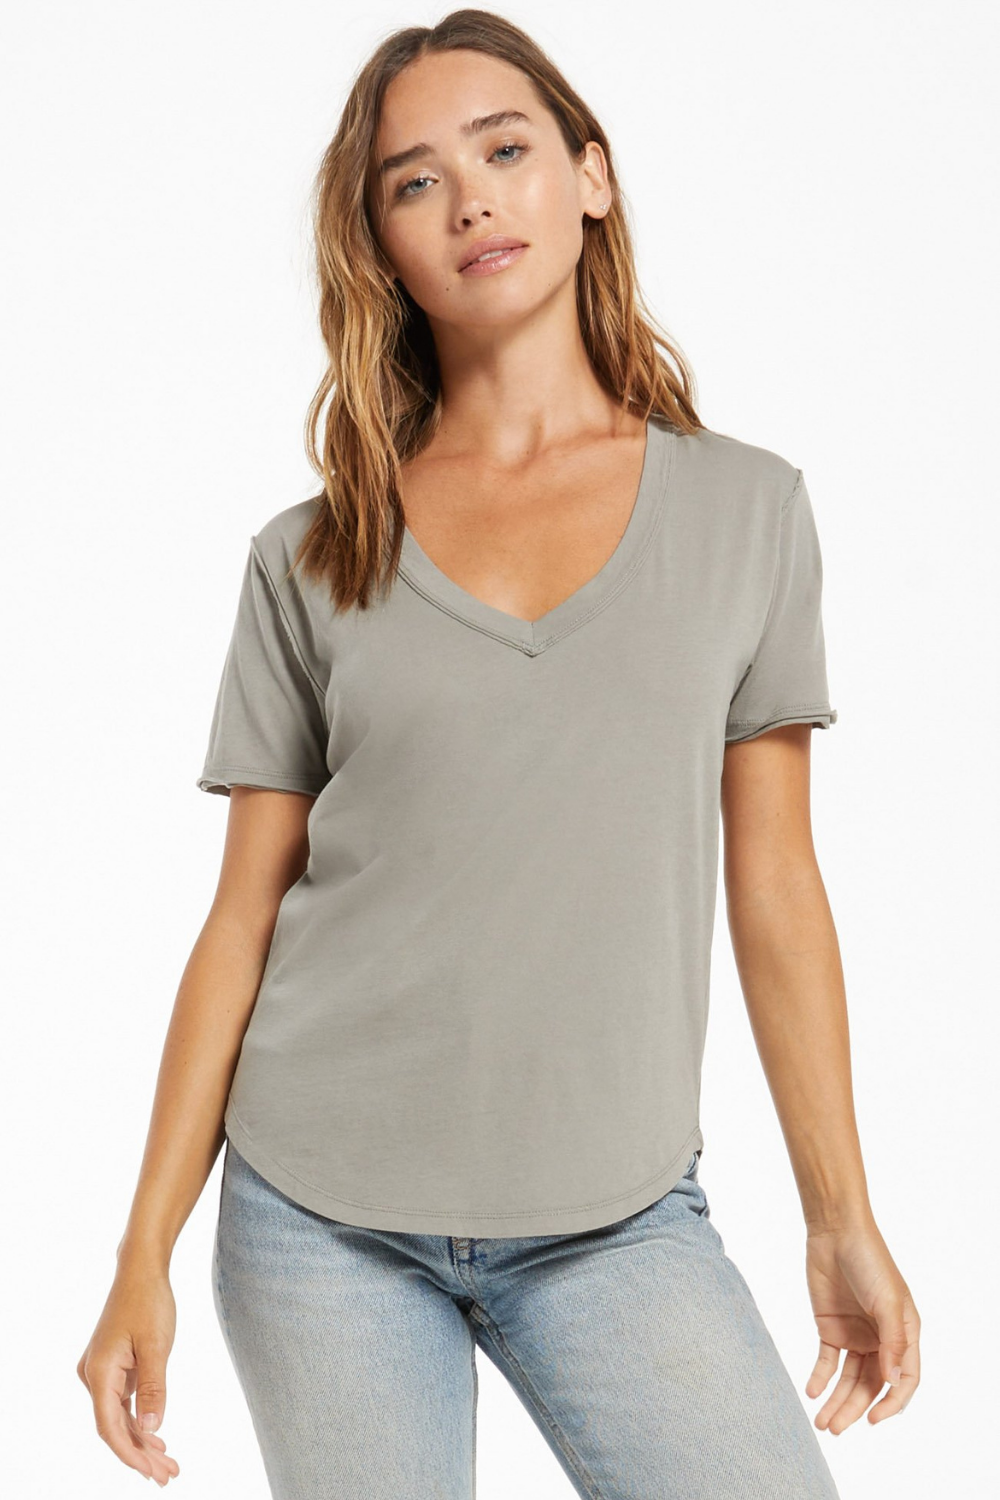 Z Supply Organic Cotton Tee | Dusty Sage